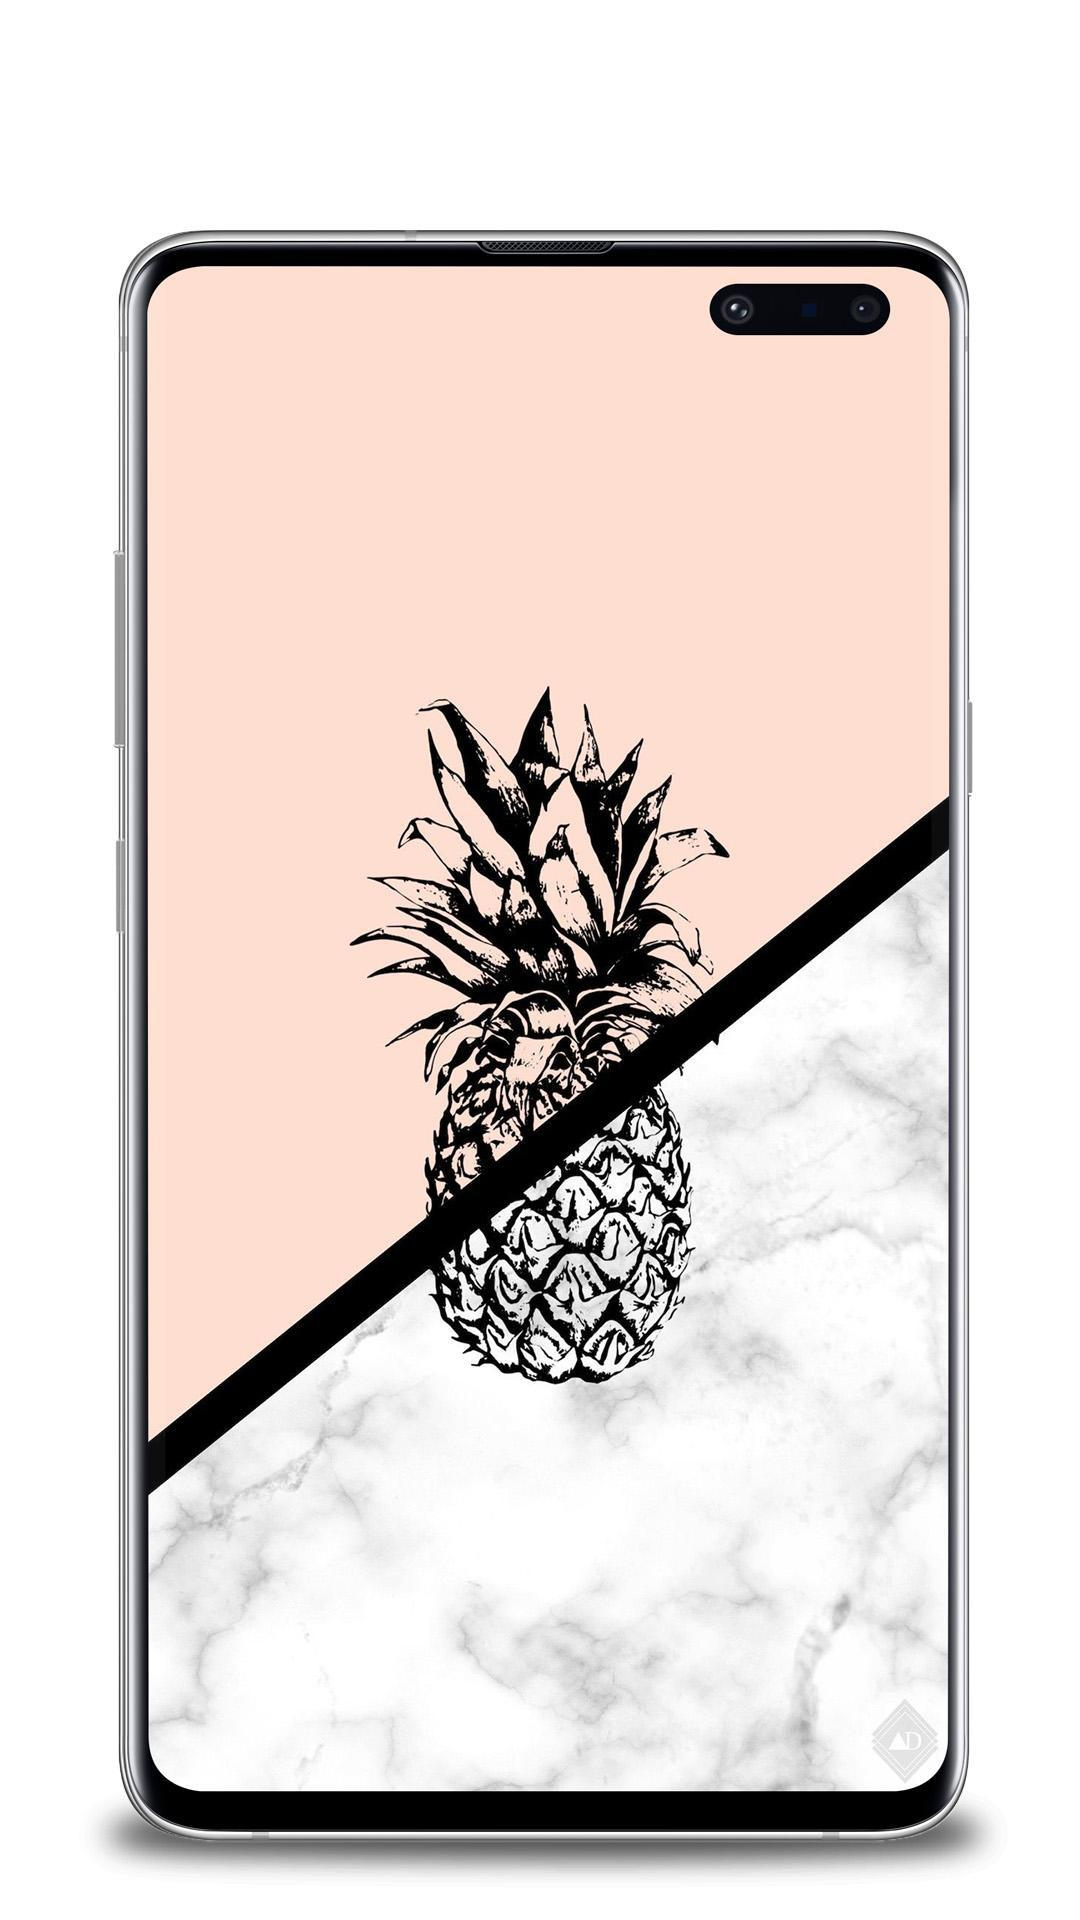 Marble Wallpapers For Android Apk Download Images, Photos, Reviews